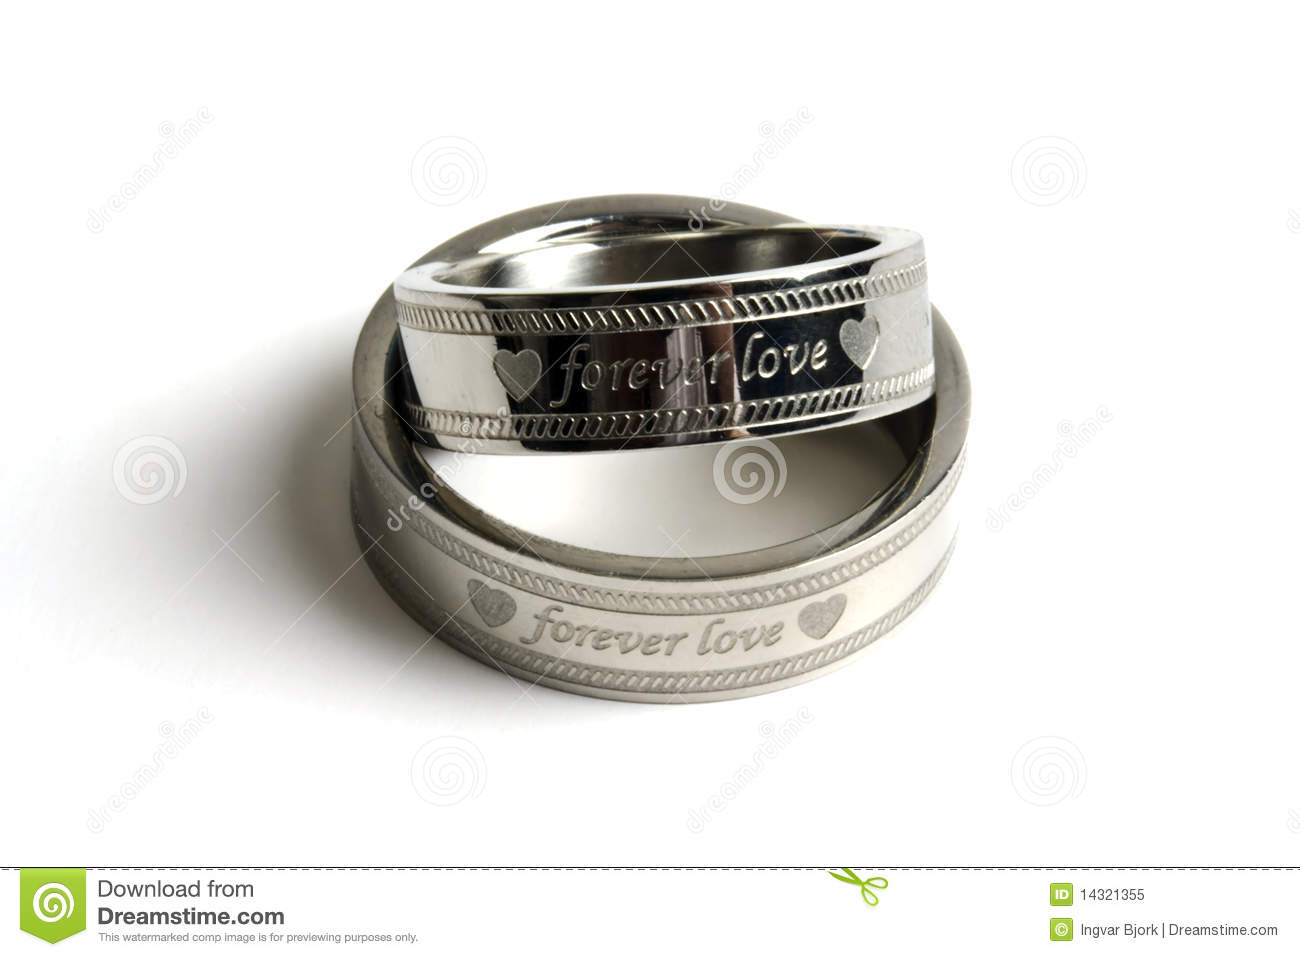 More similar stock images of ` His and hers wedding rings `